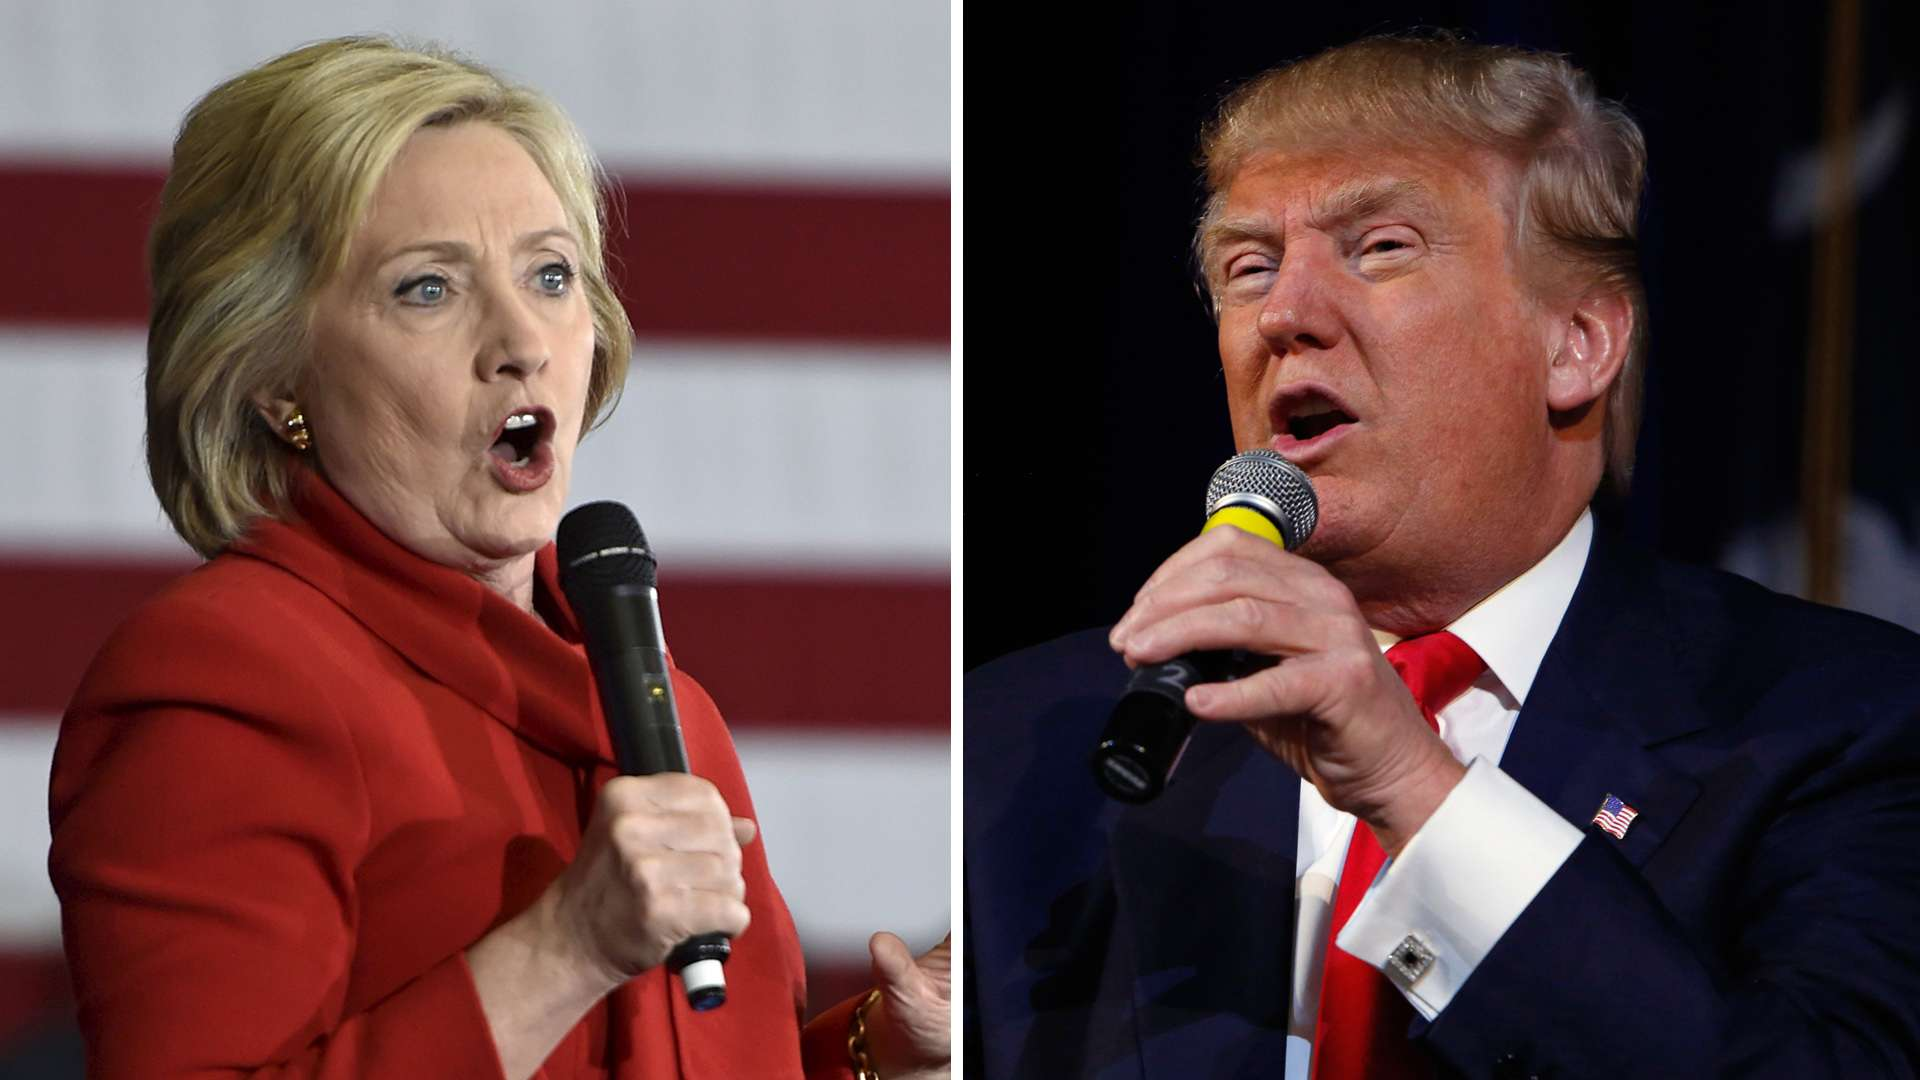 the disagreements between the presidential candidates donald trump and hilary clinton on gun control